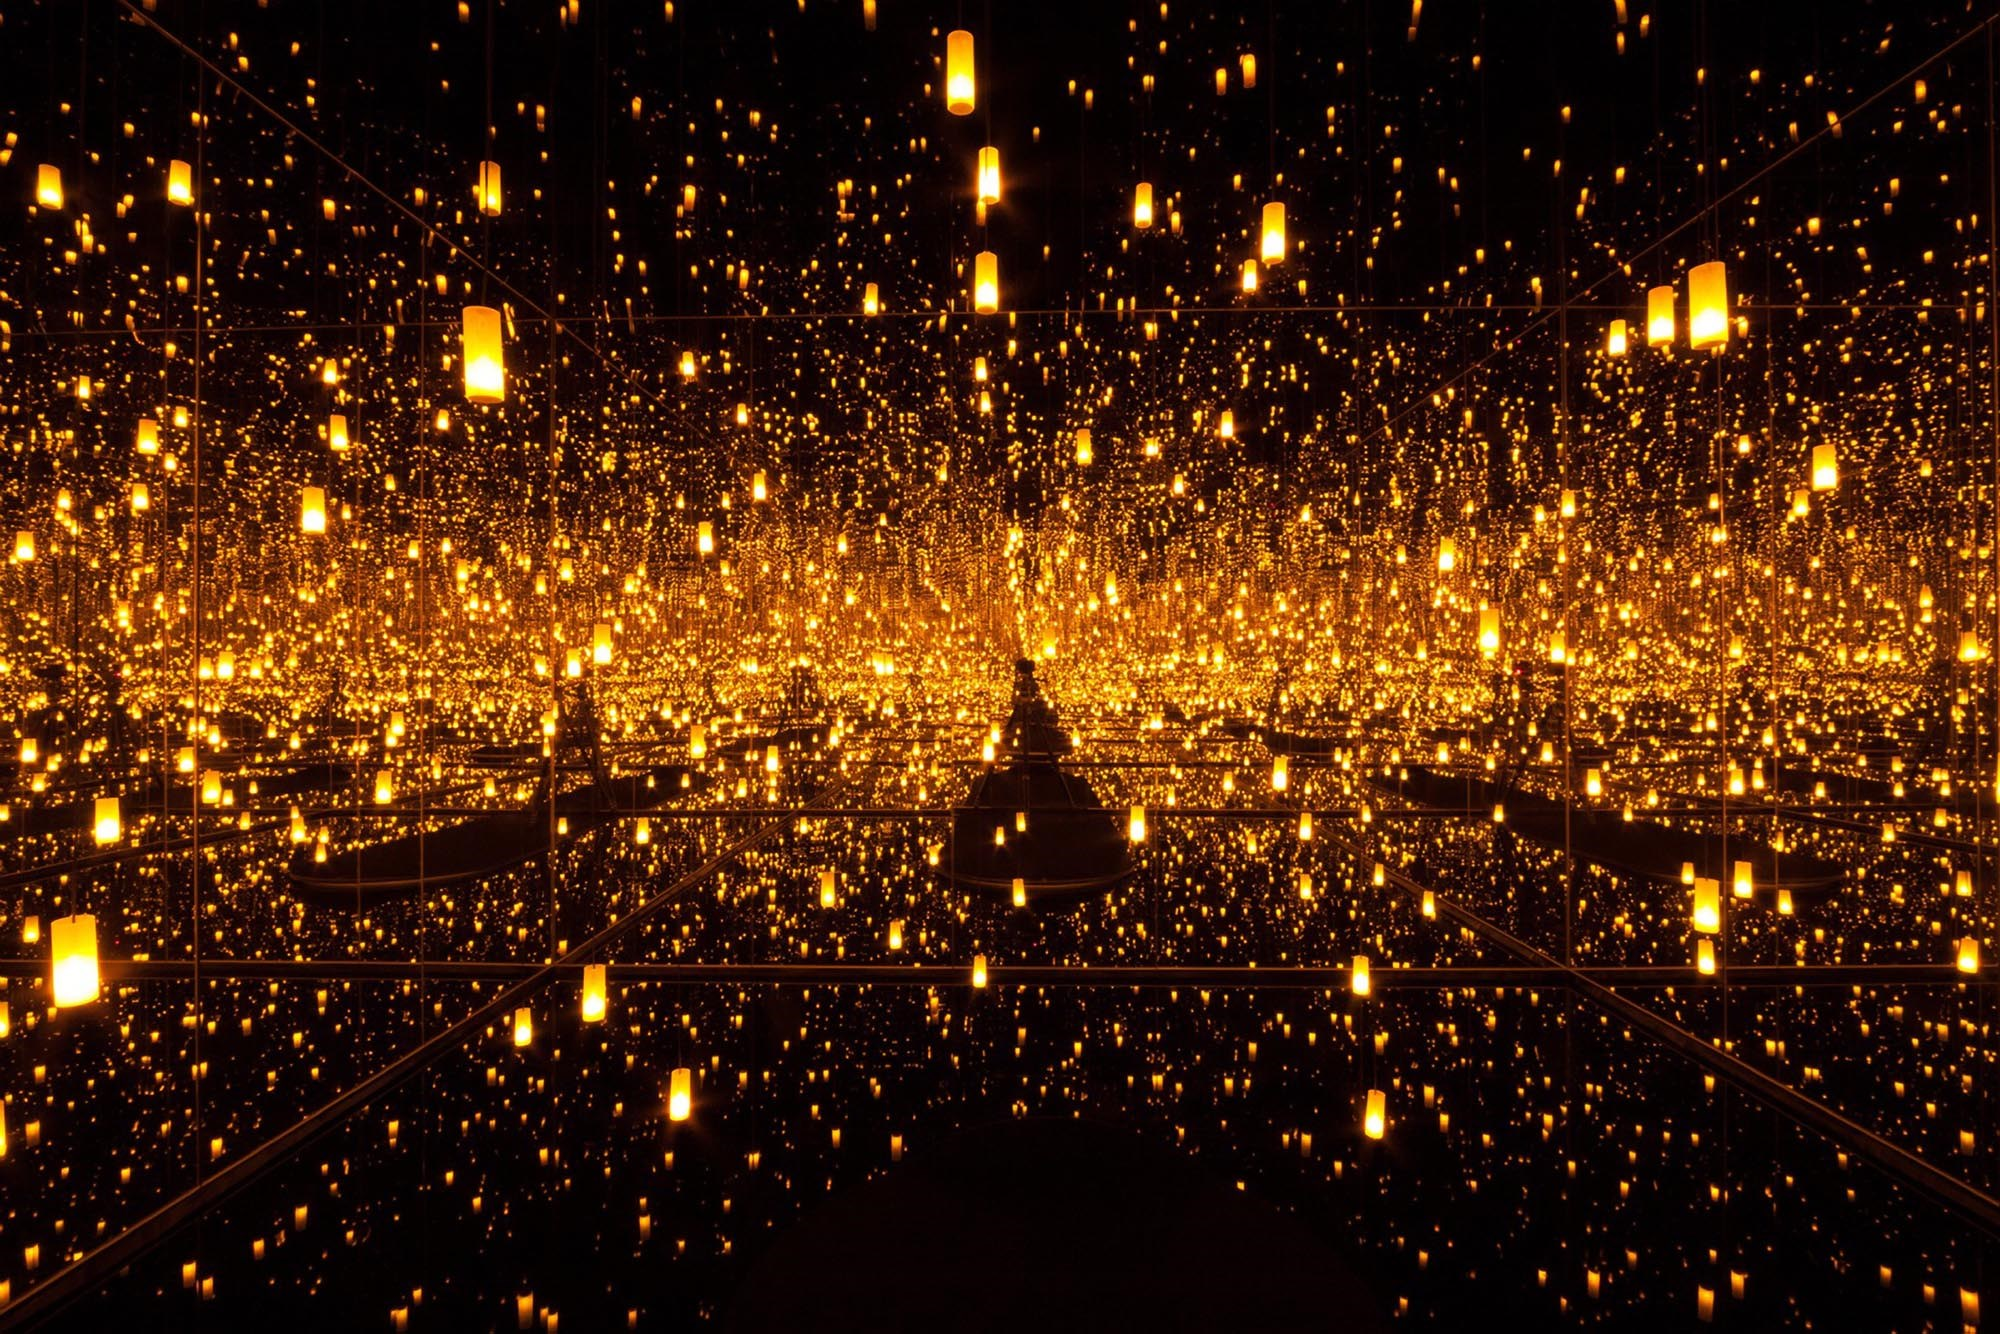 Kusama - Aftermath of Obliteration of Eternity